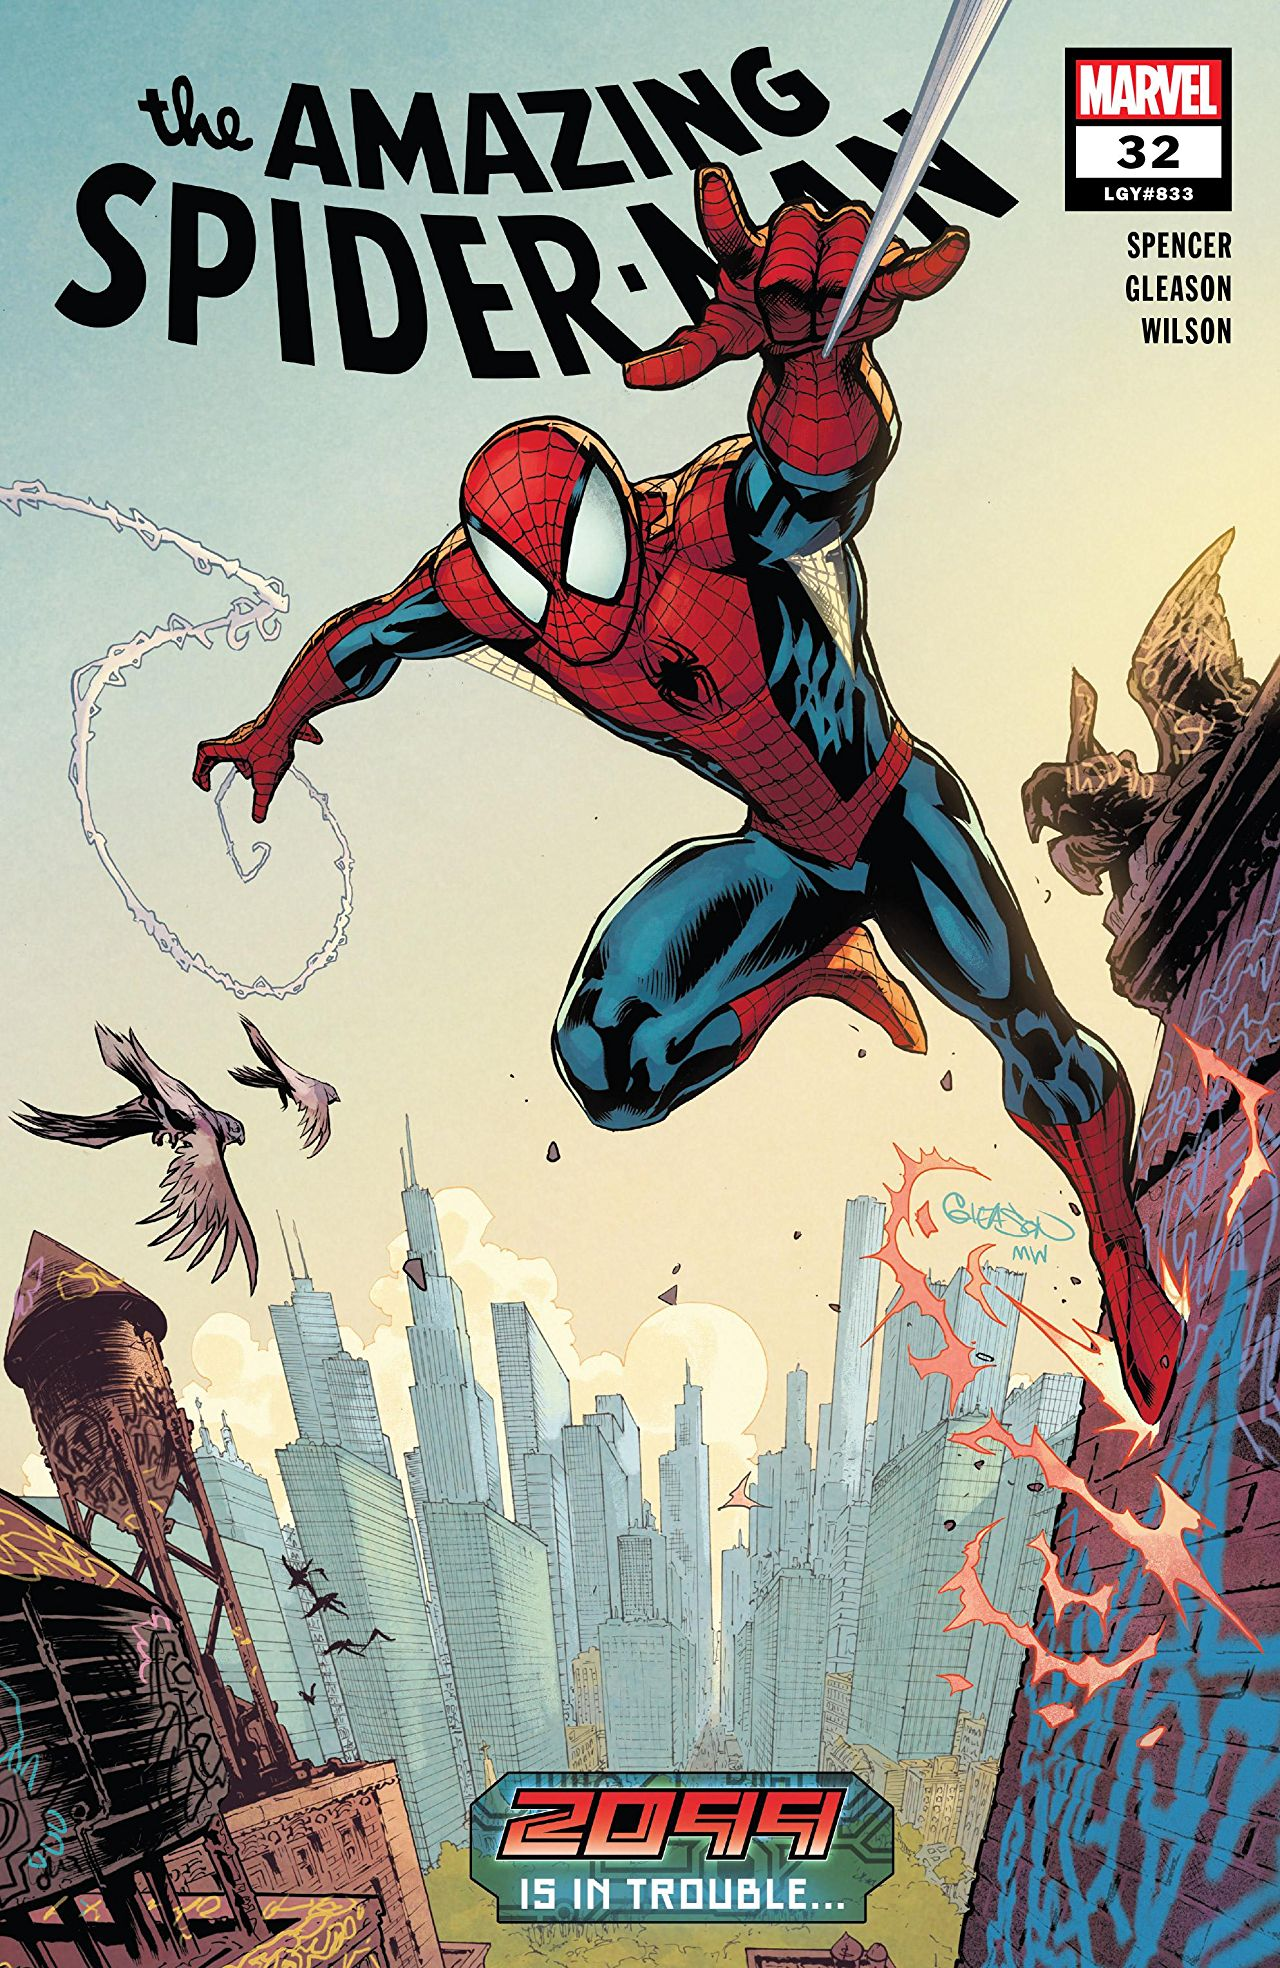 Amazing Spider-Man (Vol. 6)  #32